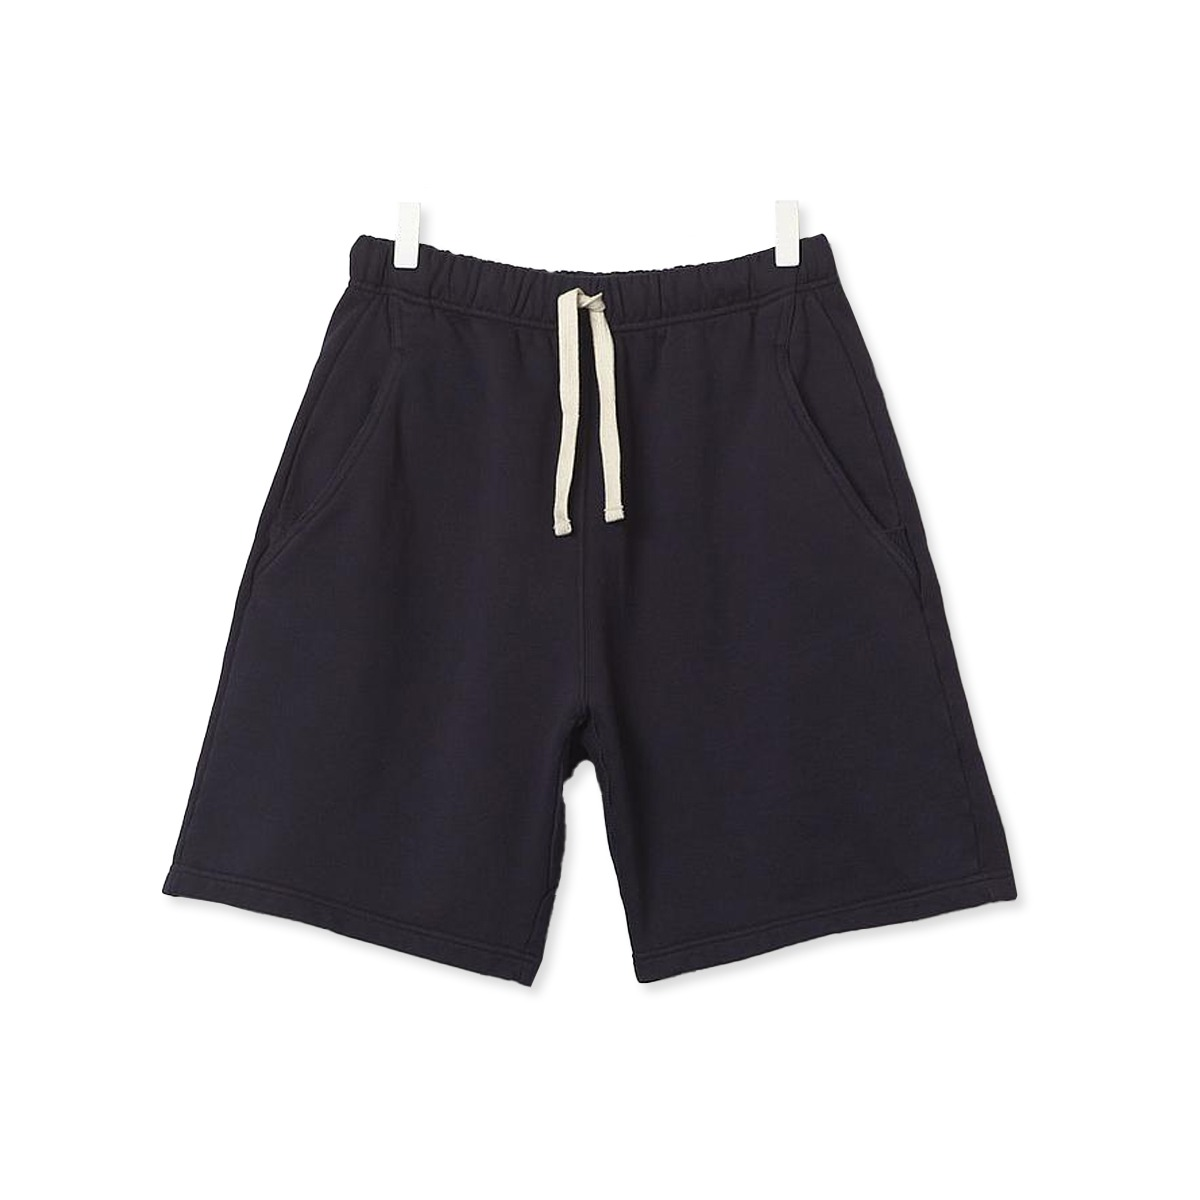 [Merz B. Schwanen] GOOD BASICS MEN'S SWEAT SHORTS 'CHARCOAL'